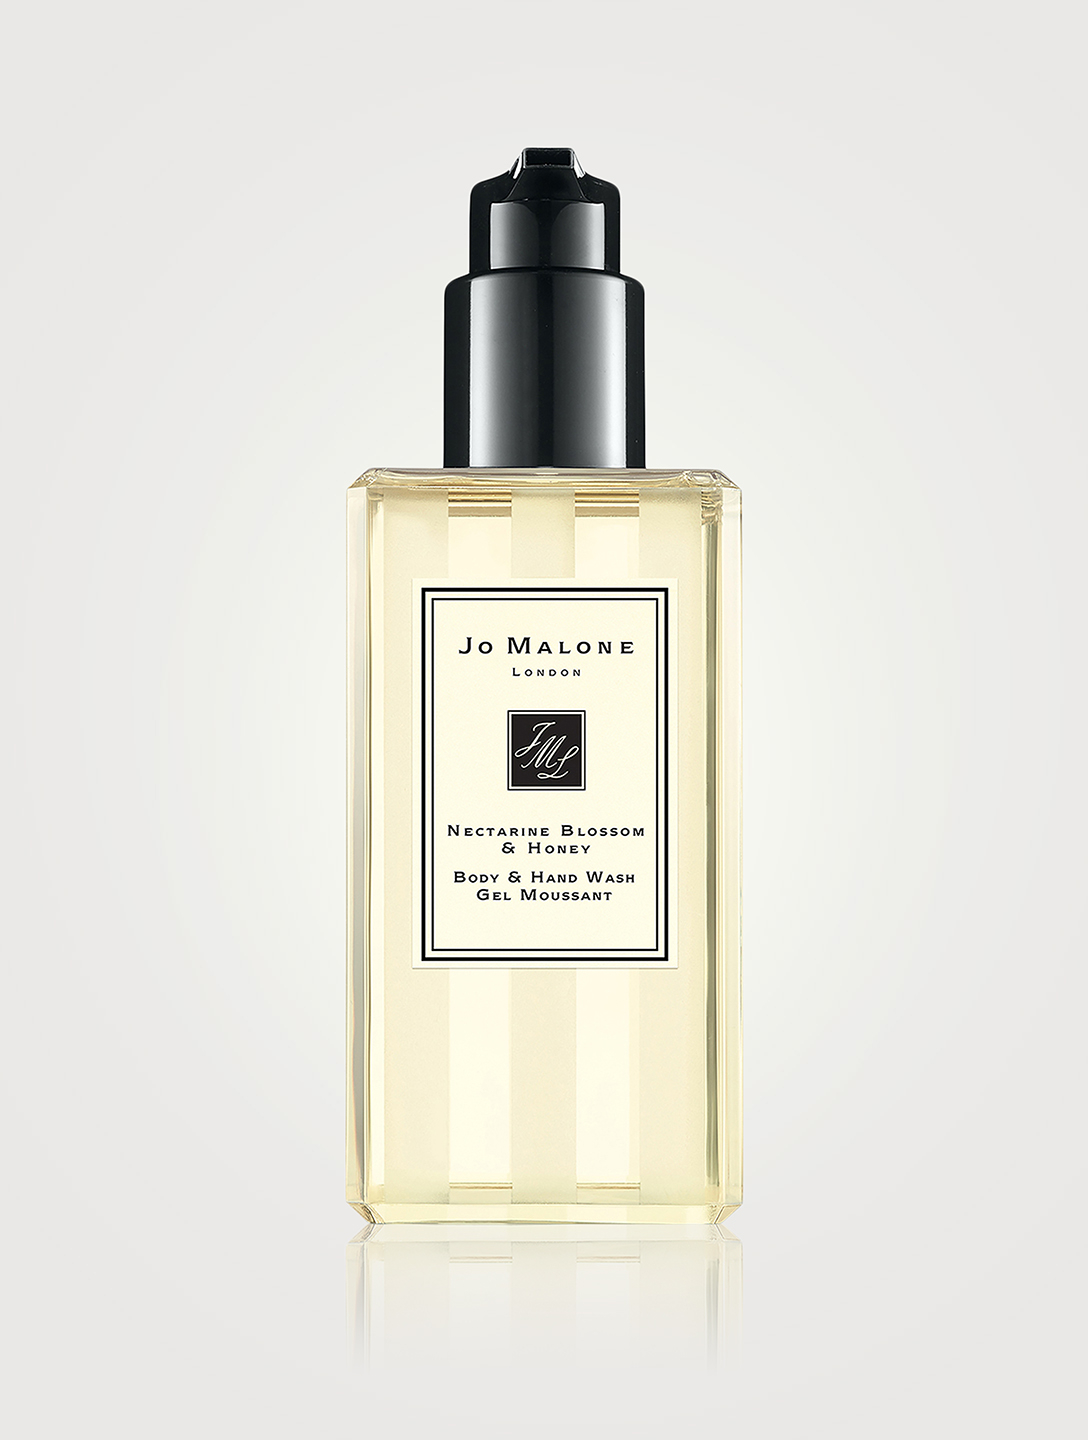 JO MALONE LONDON Nectarine Blossom & Honey Body & Hand Wash Beauty